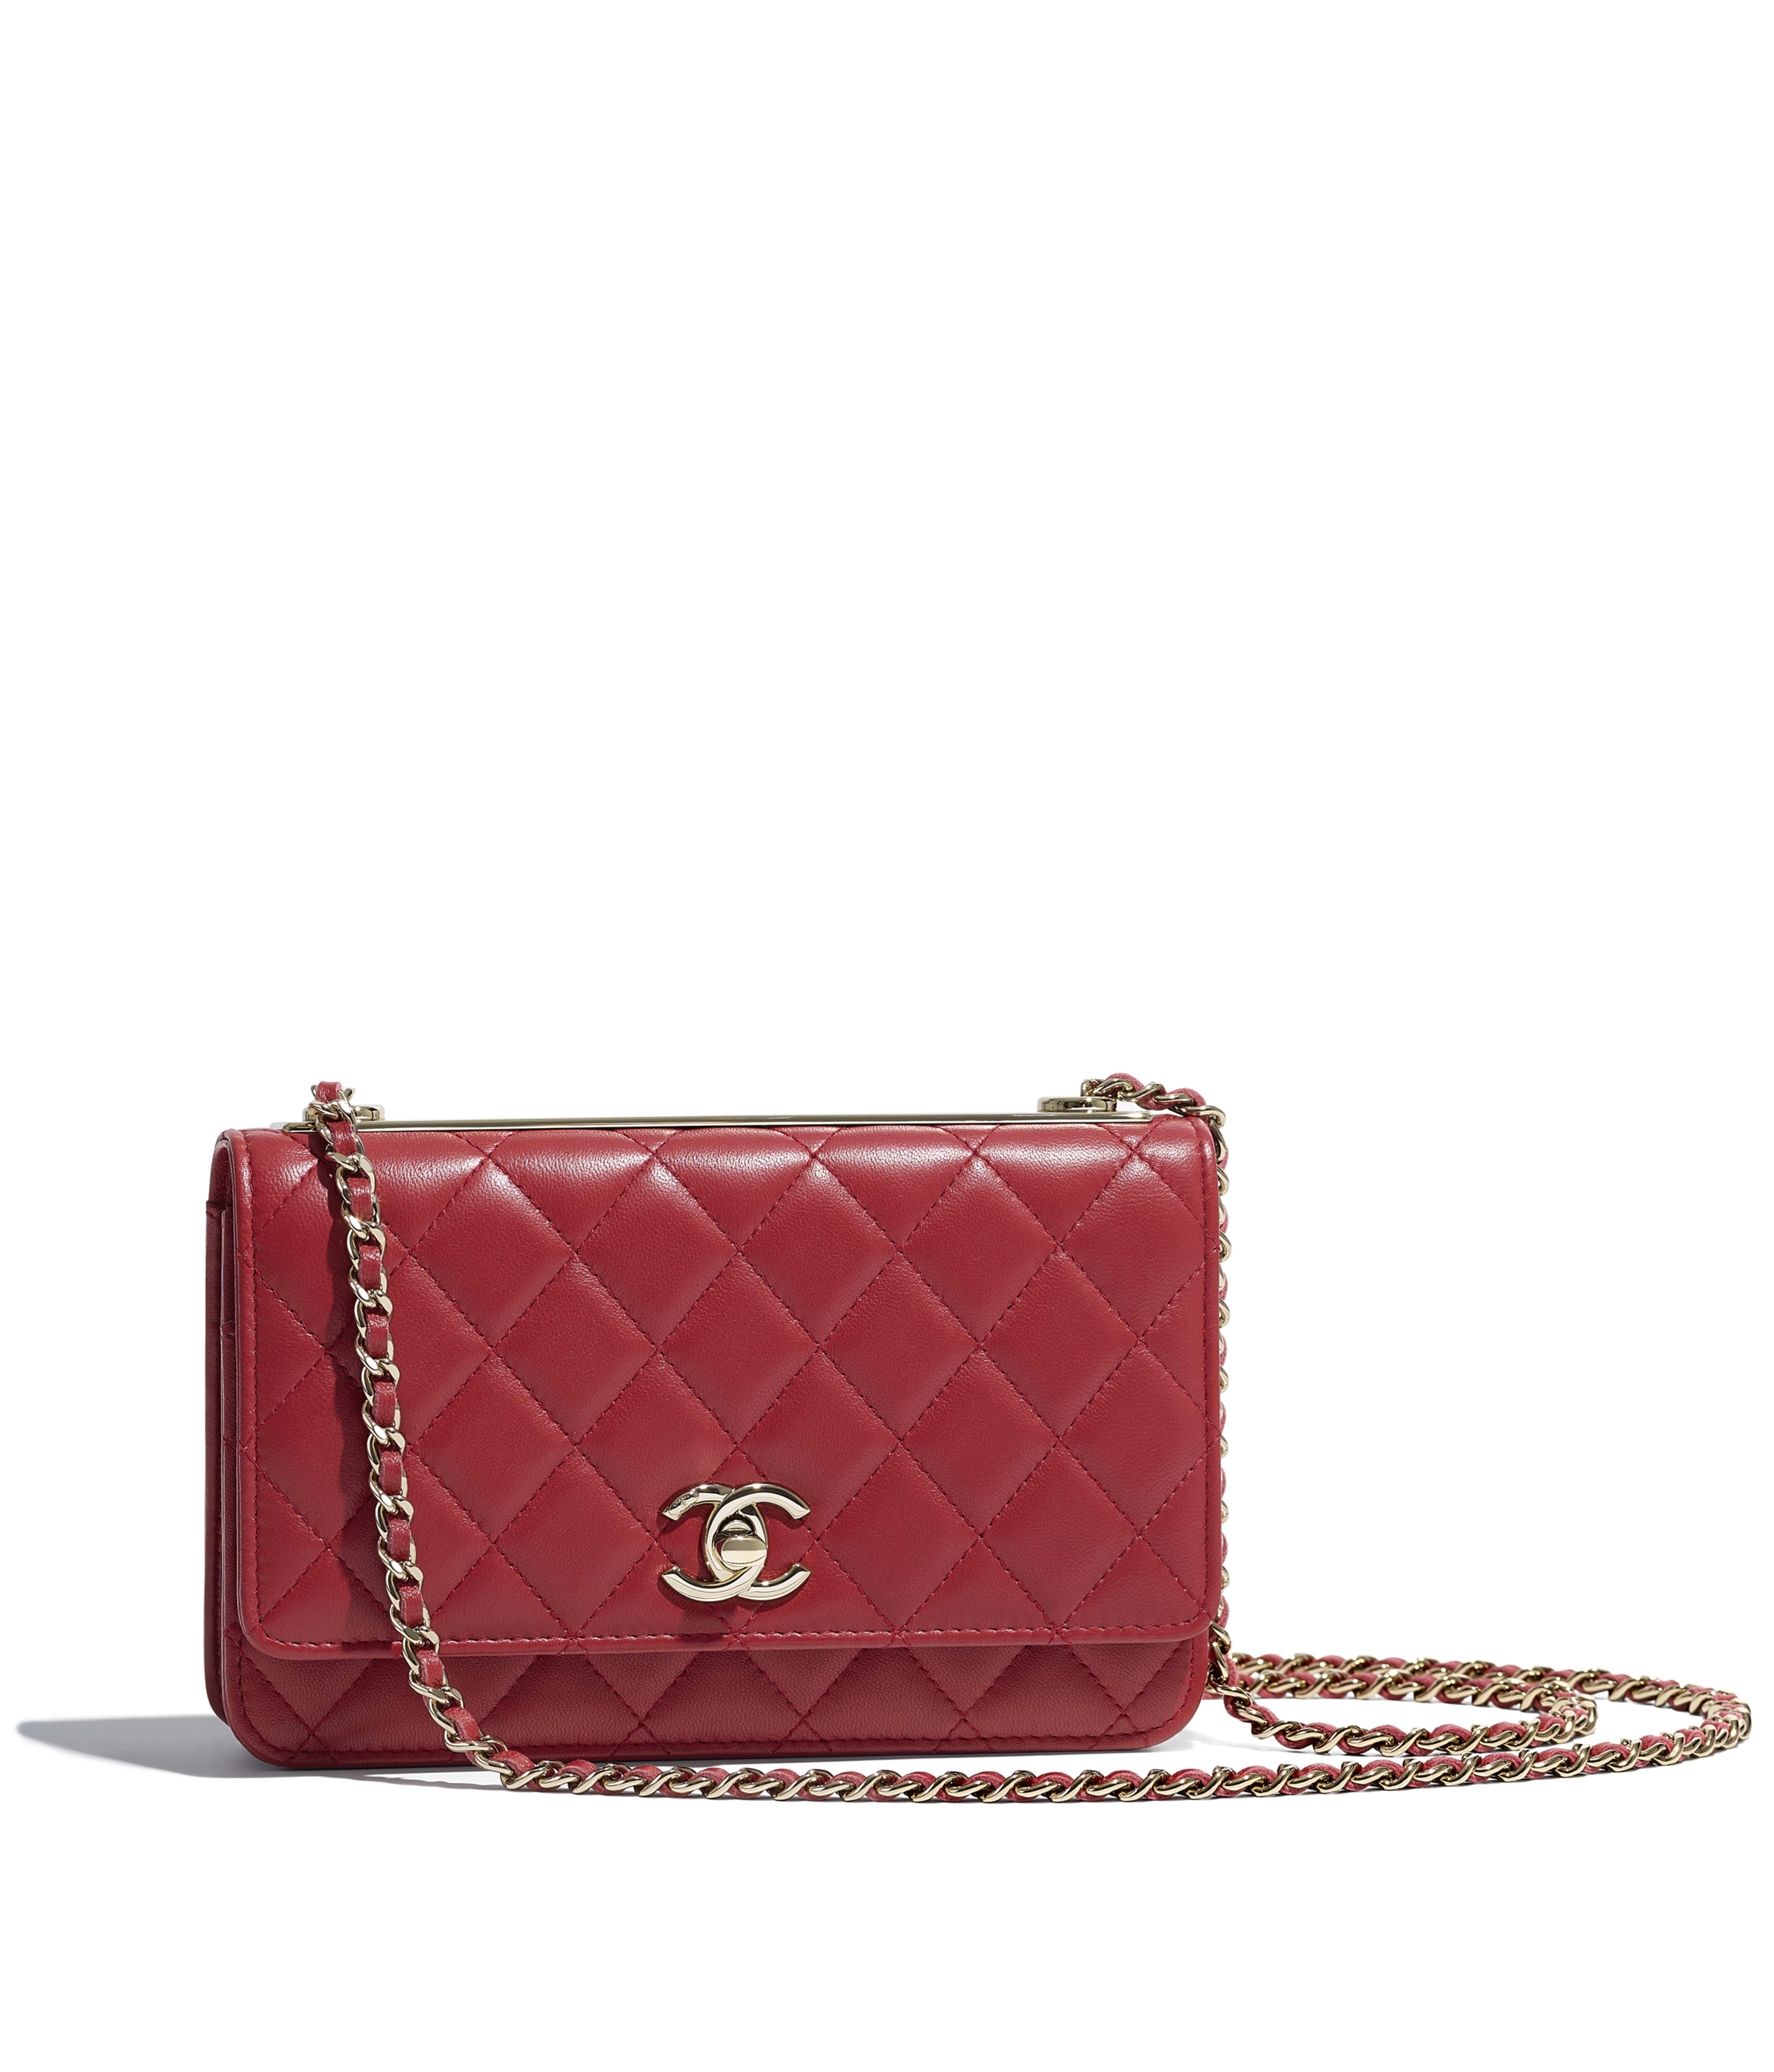 Wallet on Chain Lambskin   Gold-Tone Metal, Red Ref. A80982Y040595B455 61fc0d8fbd8